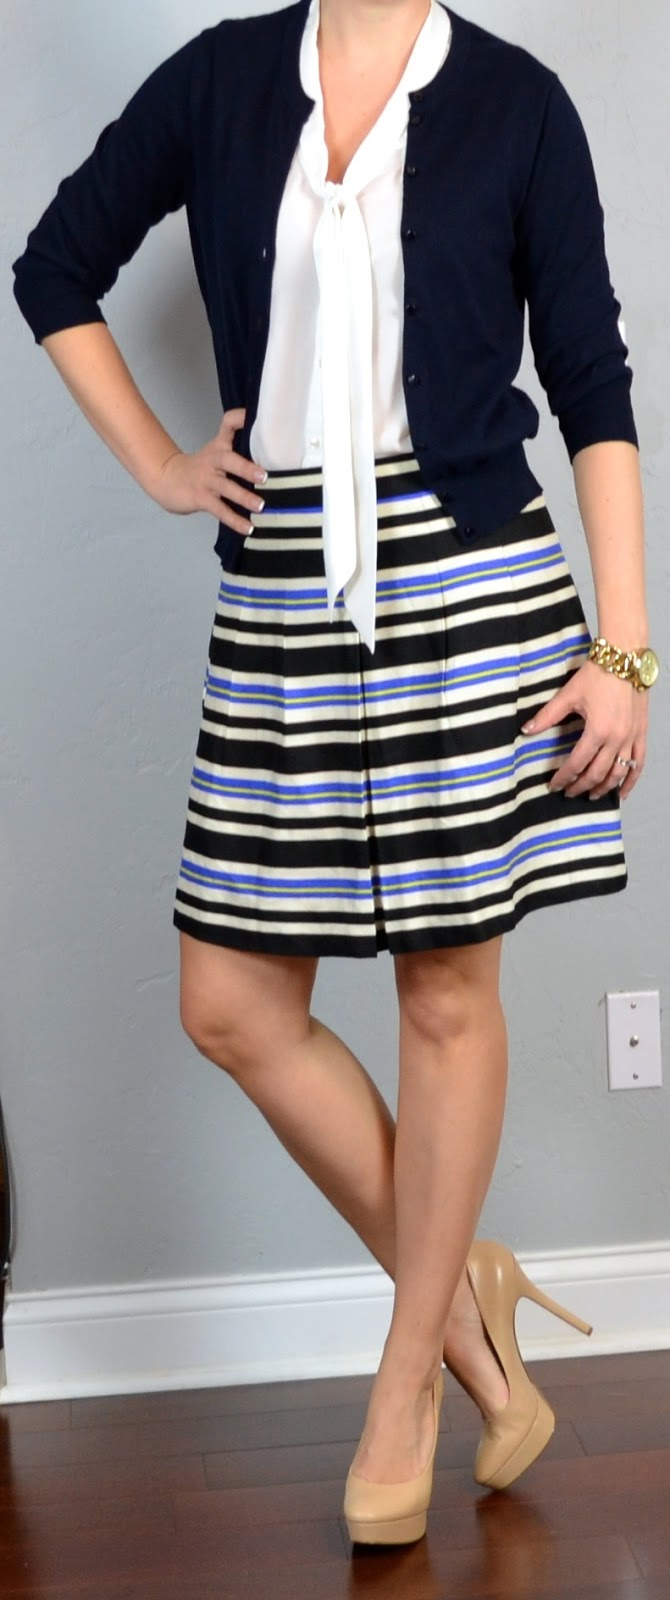 The top features a mid-width navy blue and white horizontal striped design. A solid colored navy blue skirt has been added to the dress just above the natural waistline area. A stretch band of navy blue fabric compliments the waist.